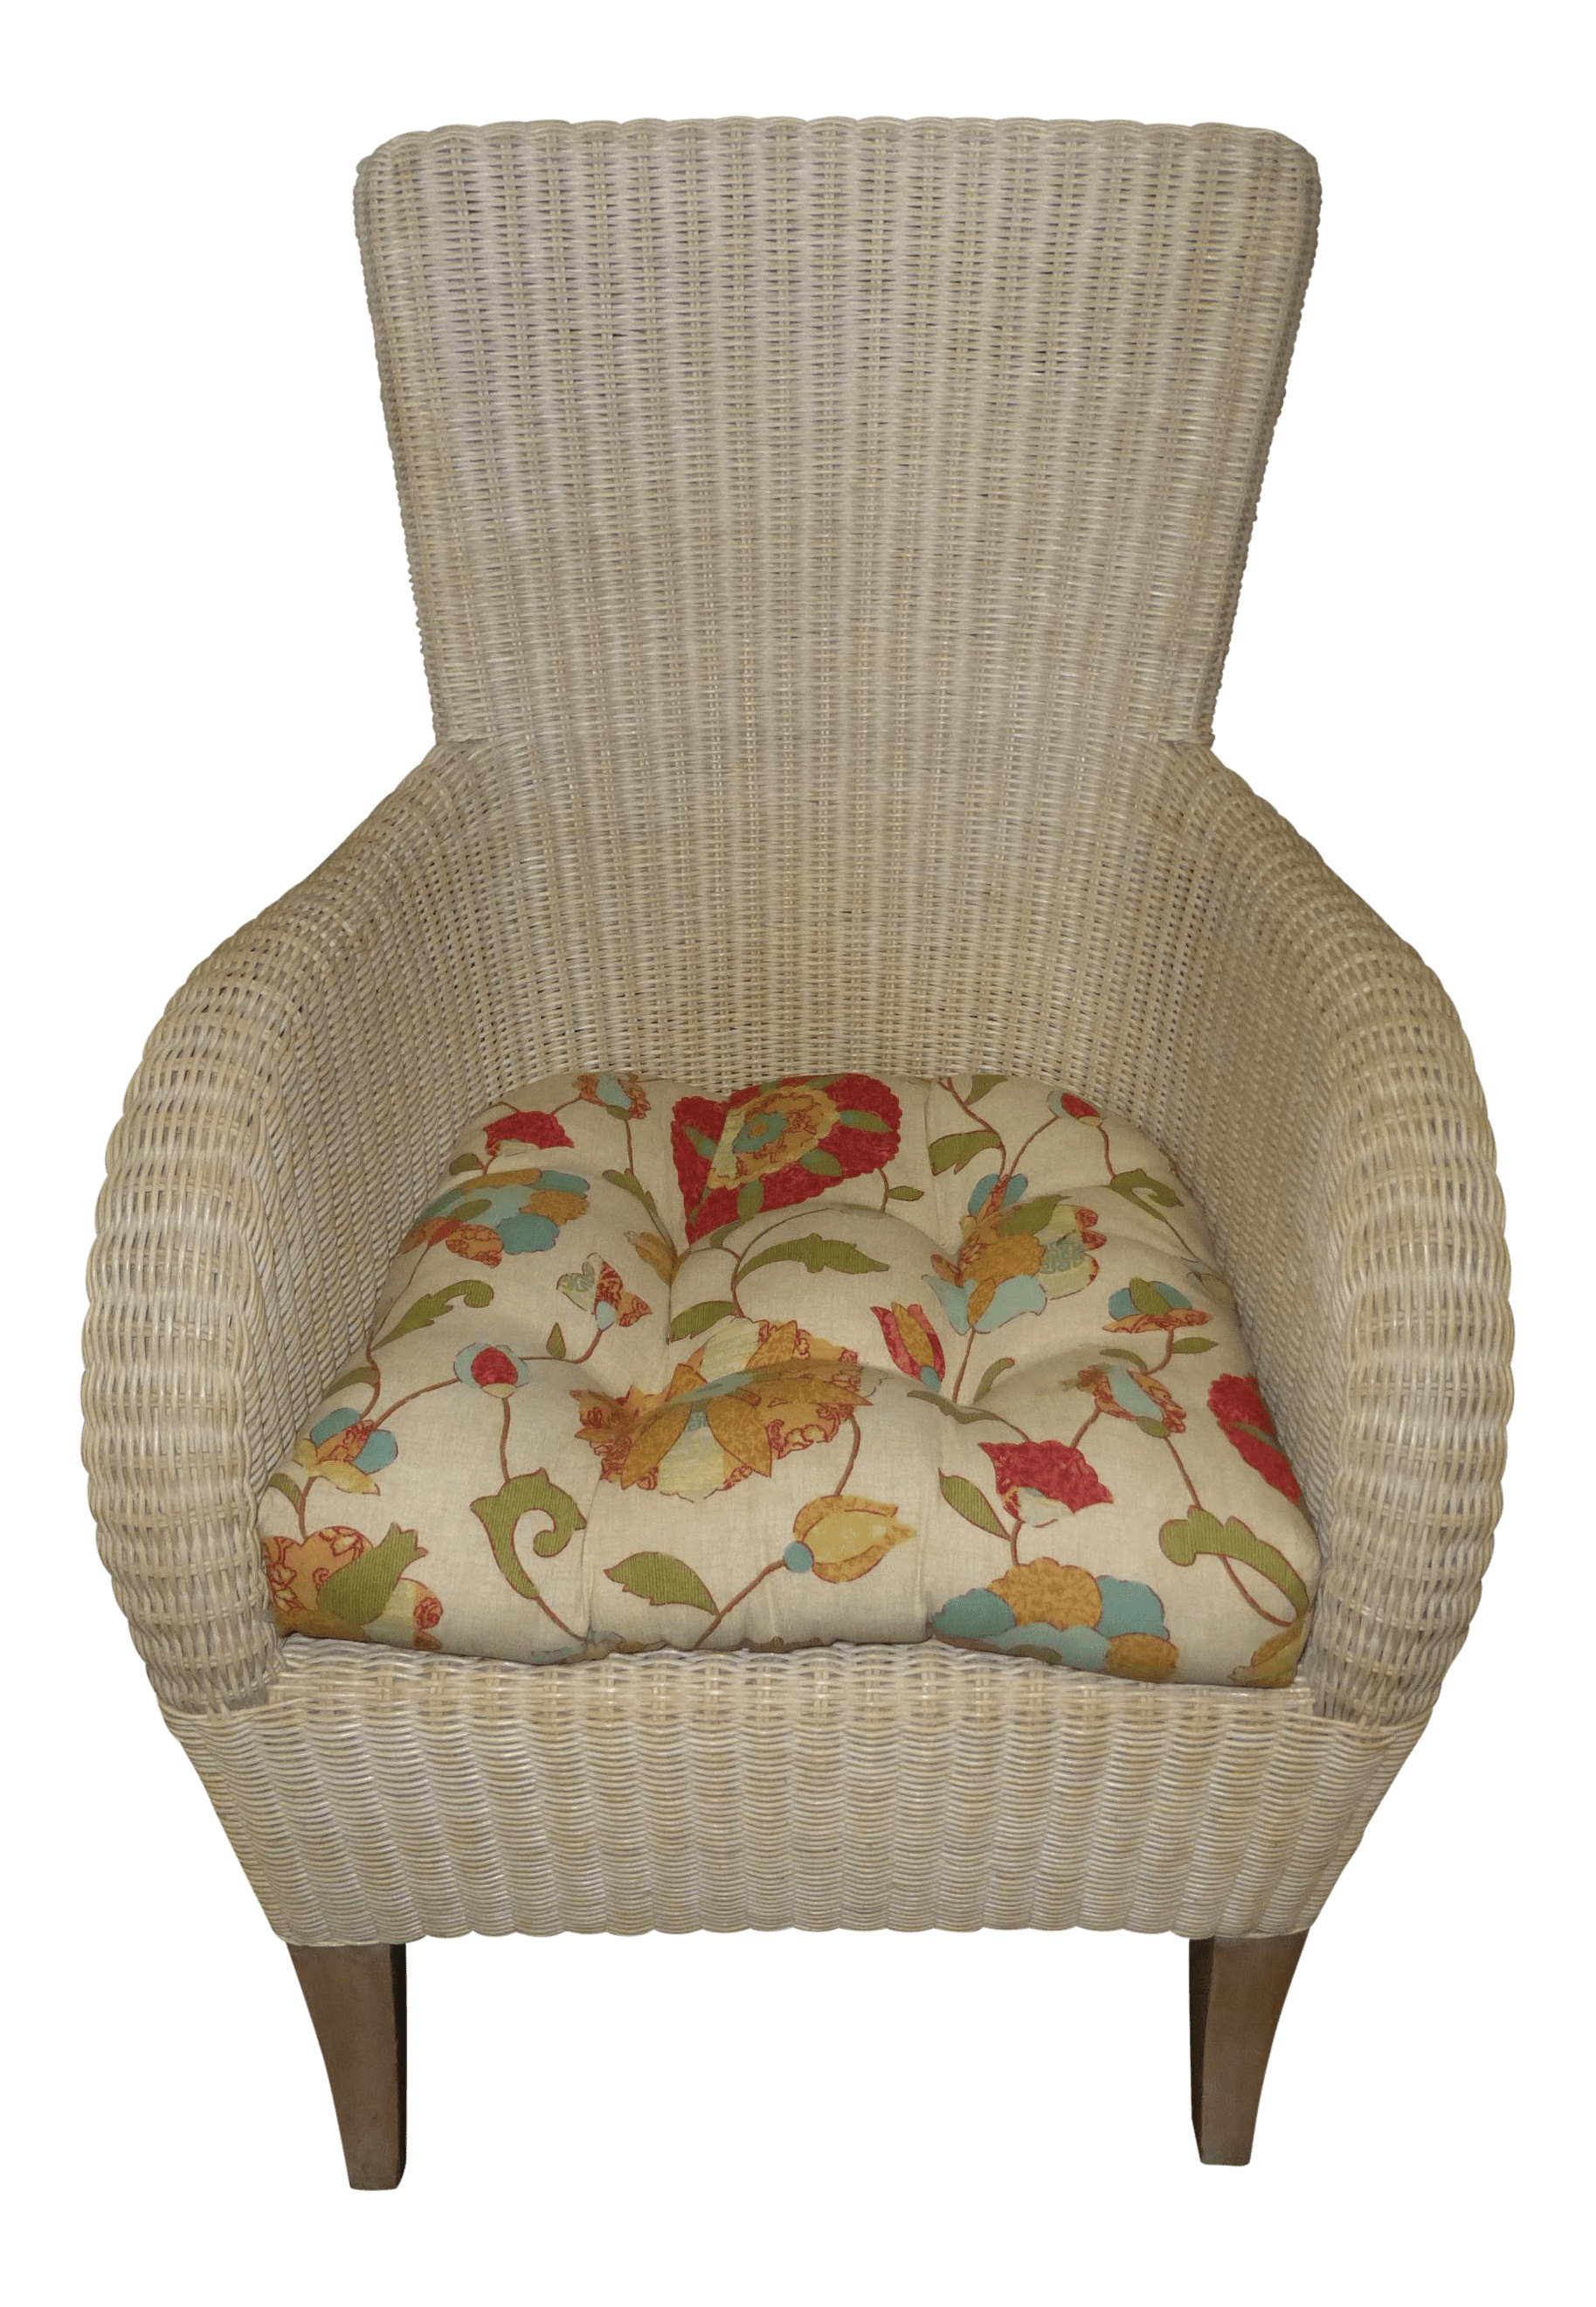 Rattan Accent Chair 1990s Vintage White French Country Cottage Beige Rattan Accent Chair